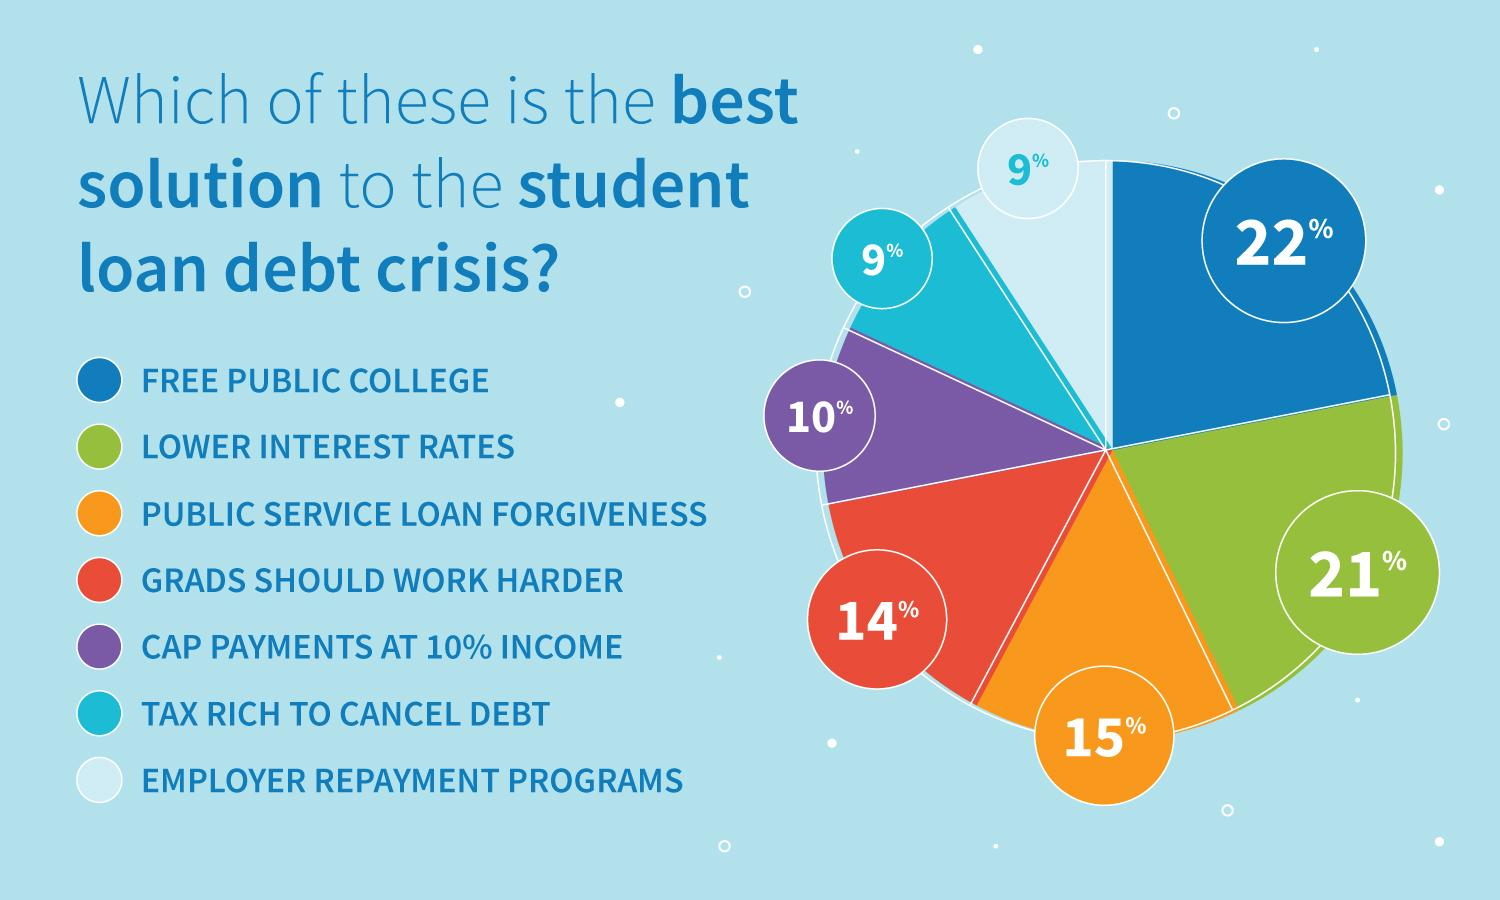 Survey results: which of these is the best solution to the student loan debt crisis?